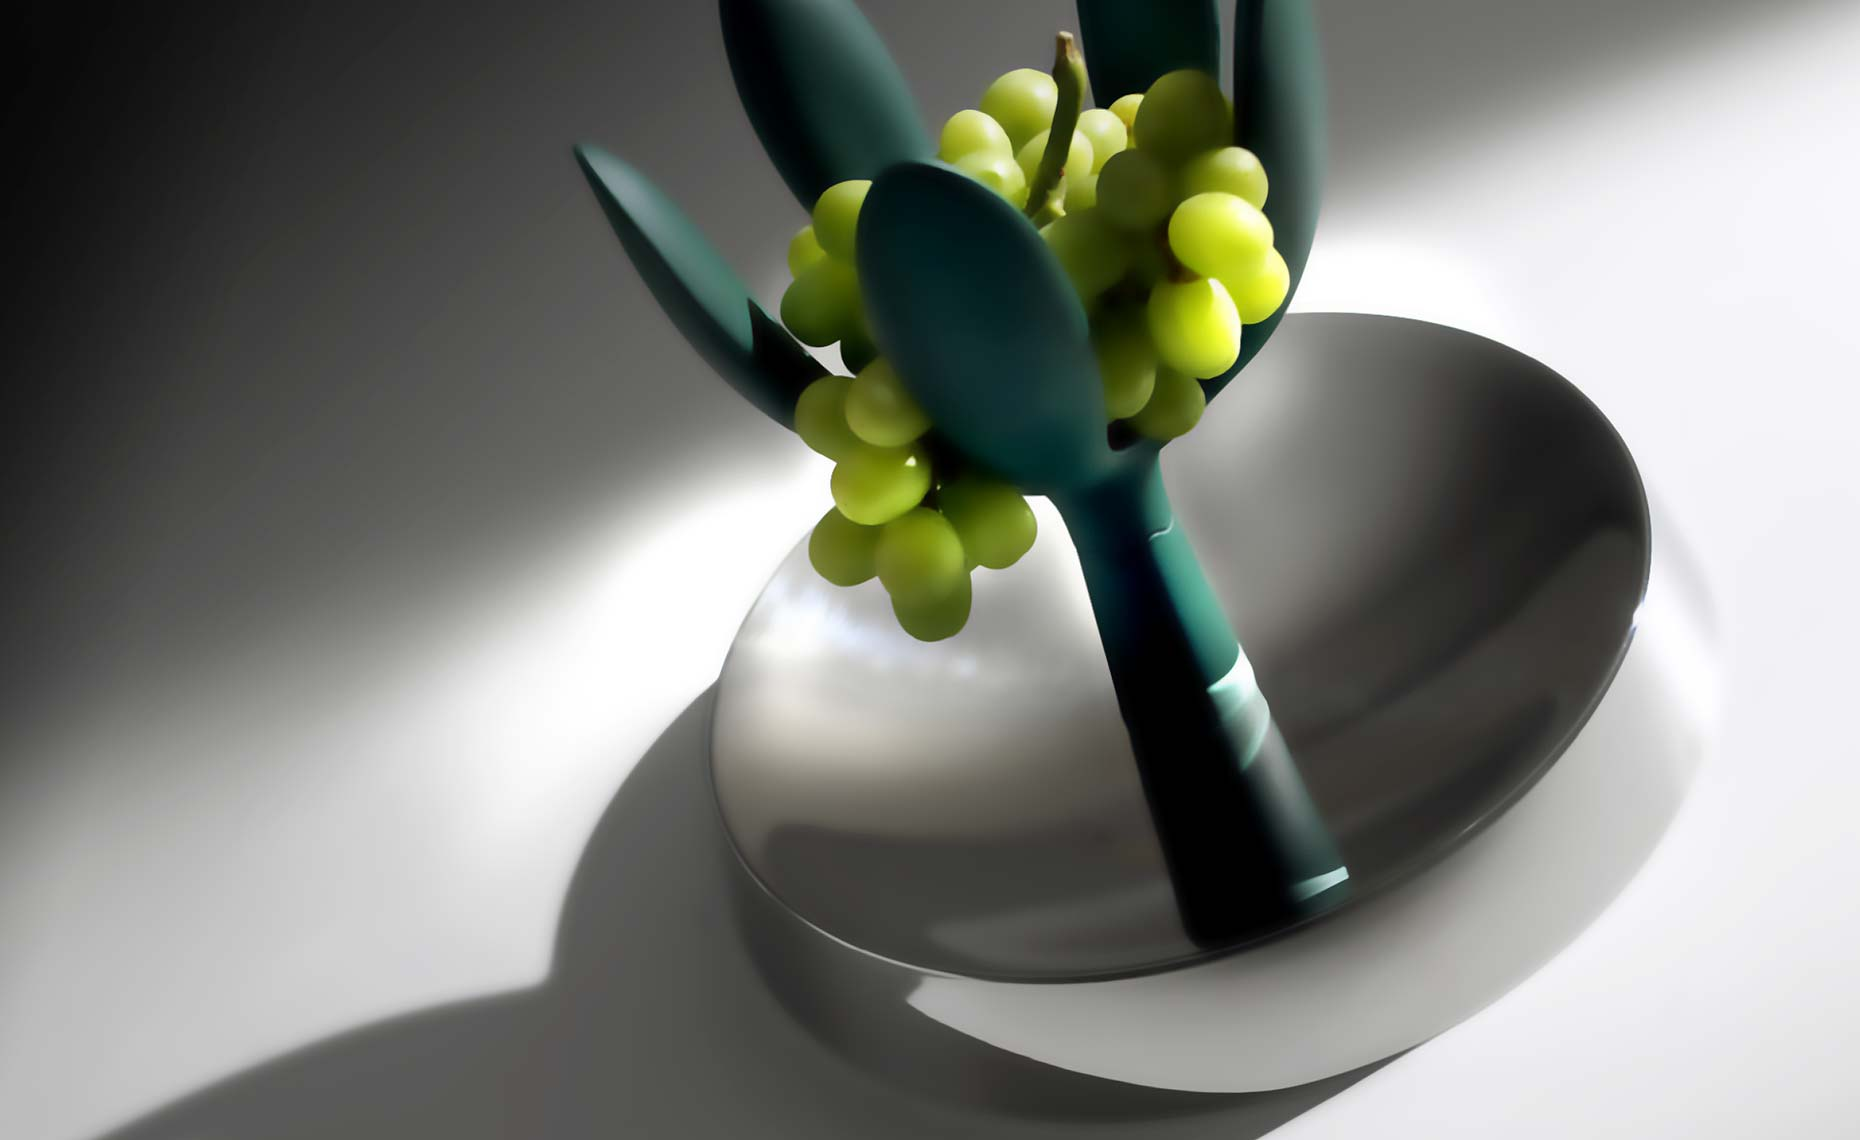 alessi stefano giovannoni fruit mama fruit holder-grapes.jpg